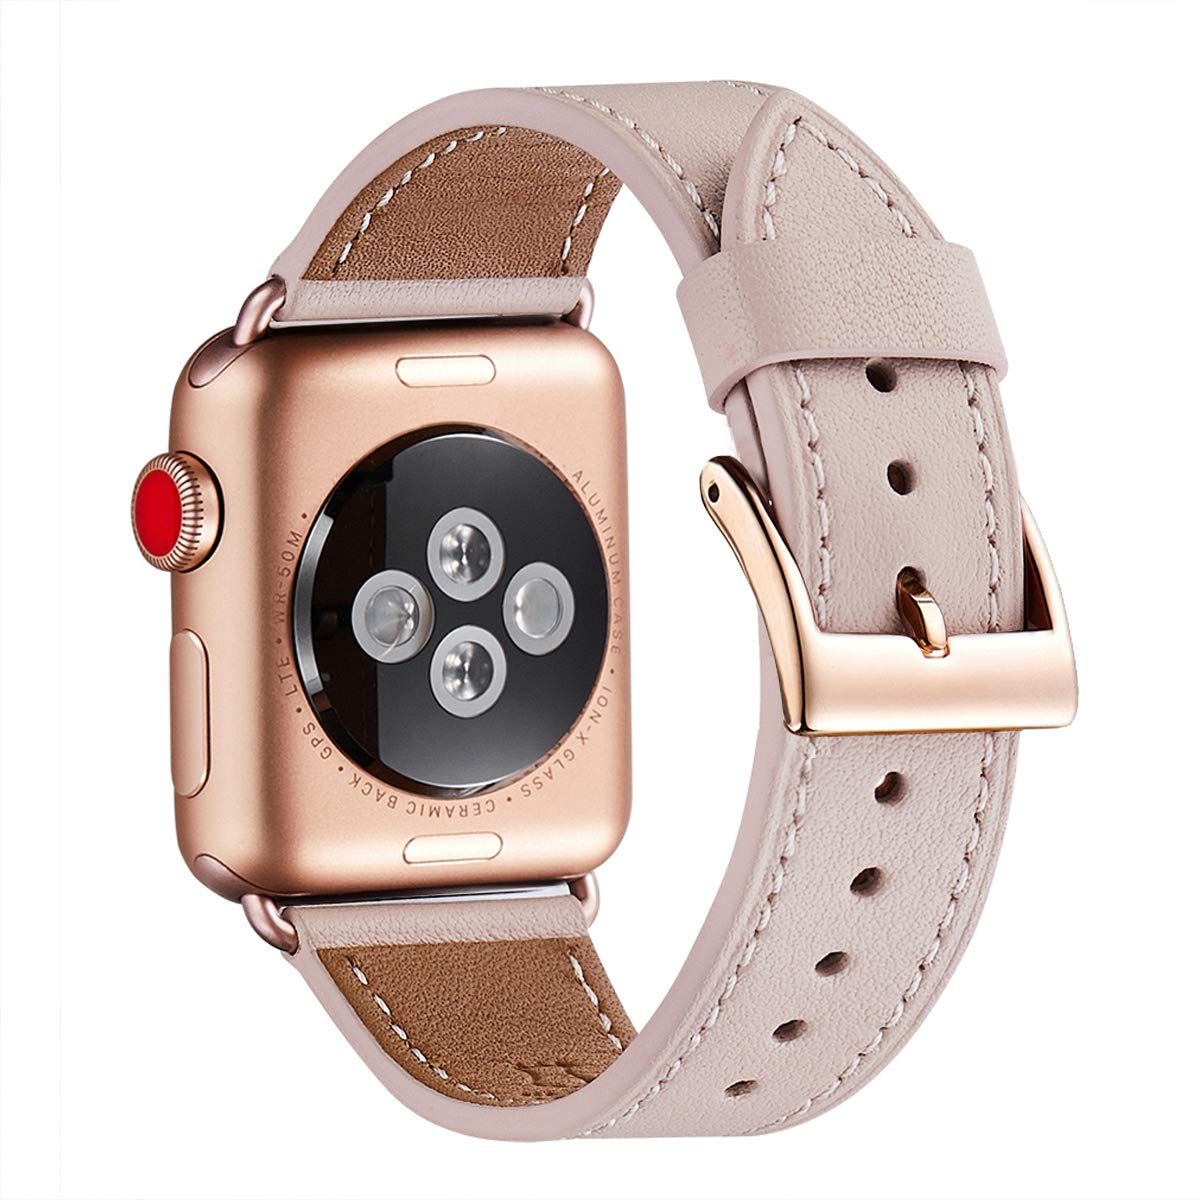 WFEAGL Compatible with i-Watch Band 38mm 40mm, Top Grain Leather Band Replacement Strap with for i-WatchSeries 4/3/2/1,Sport, Edition (Pink Sand Band+Gold Square Buckle) product image